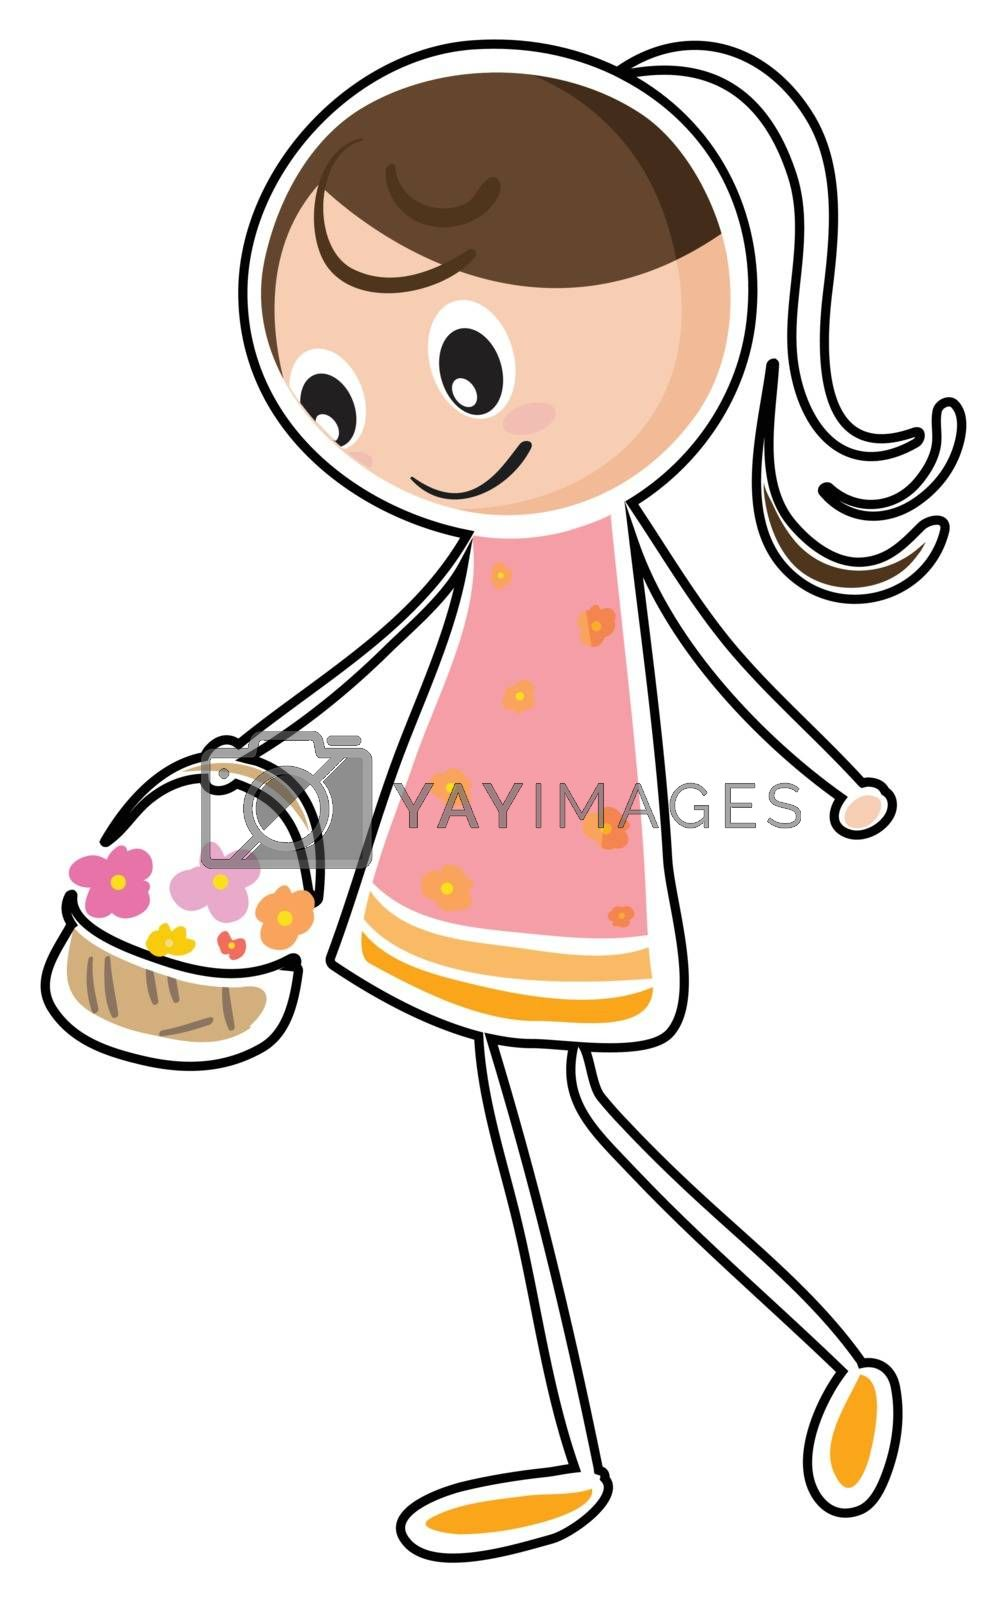 Illustration of a sketch of a girl holding a basket on a white background